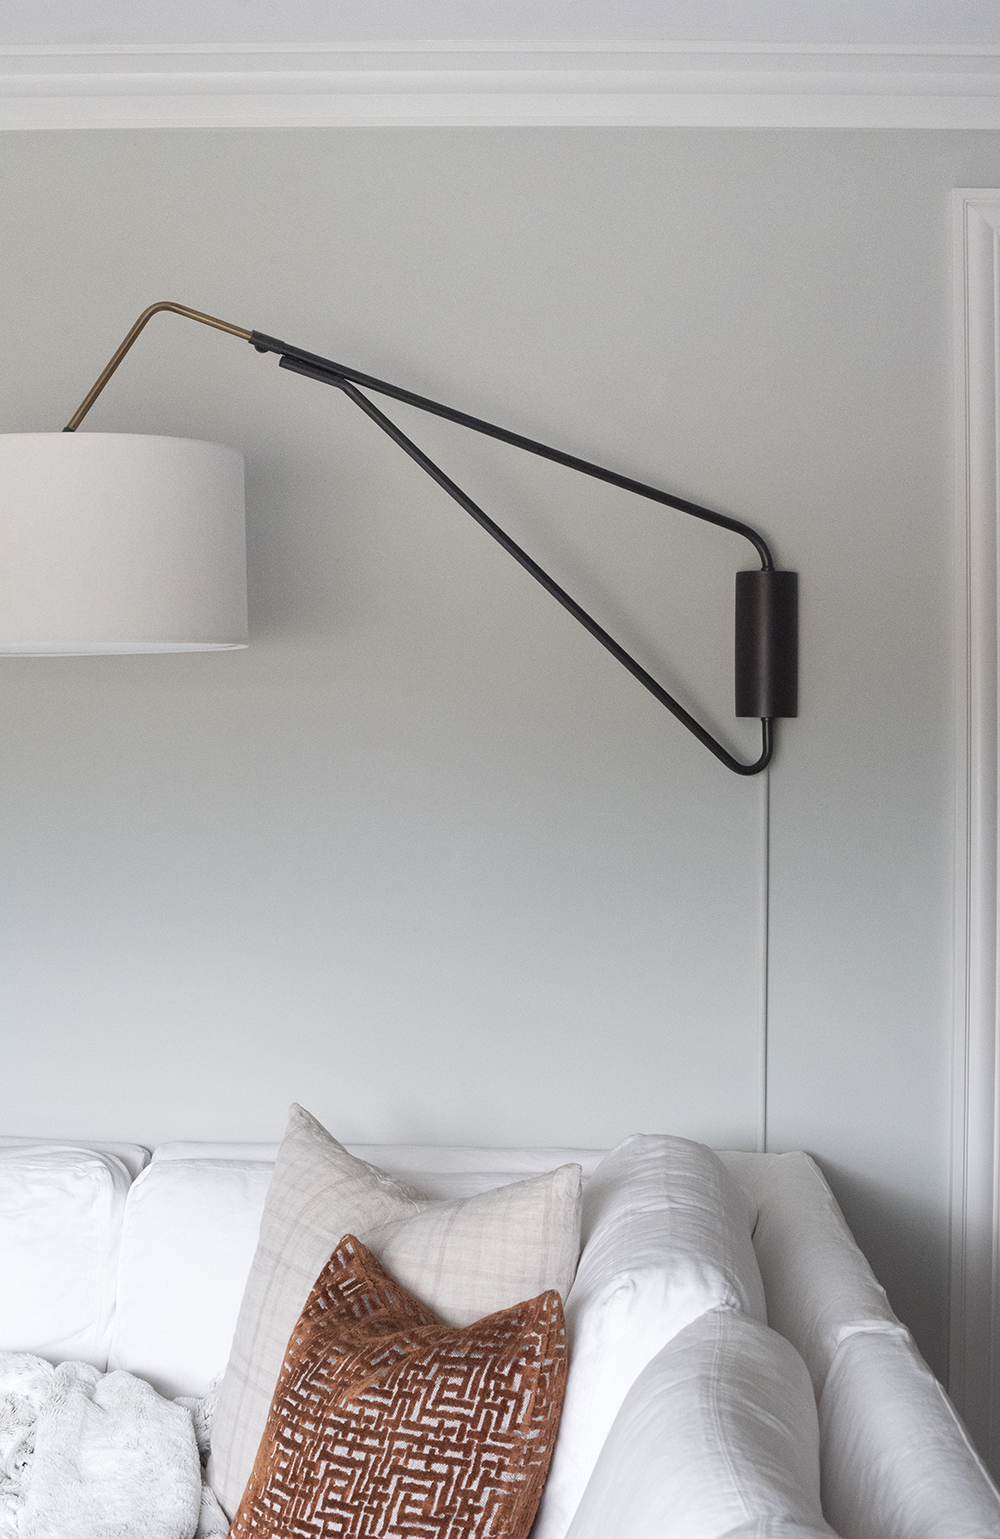 How to Hide Light Fixture Cords - roomfortuesday.com